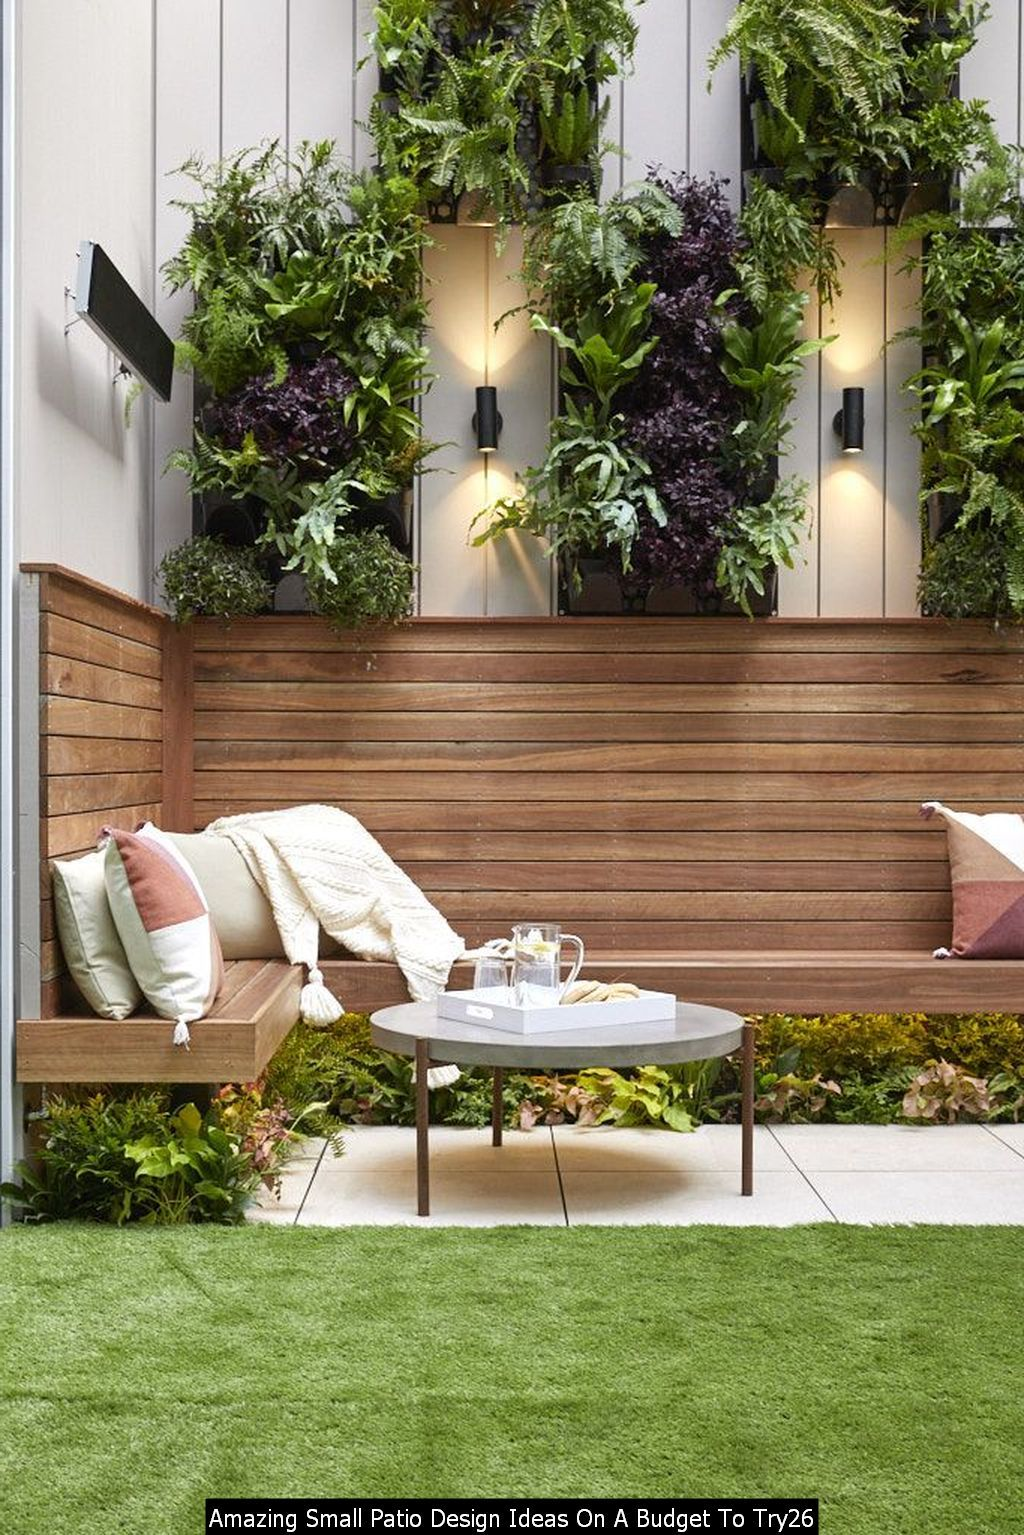 Cool Amazing Small Patio Design Ideas On A Budget To Try ... on Courtyard Ideas On A Budget id=44812